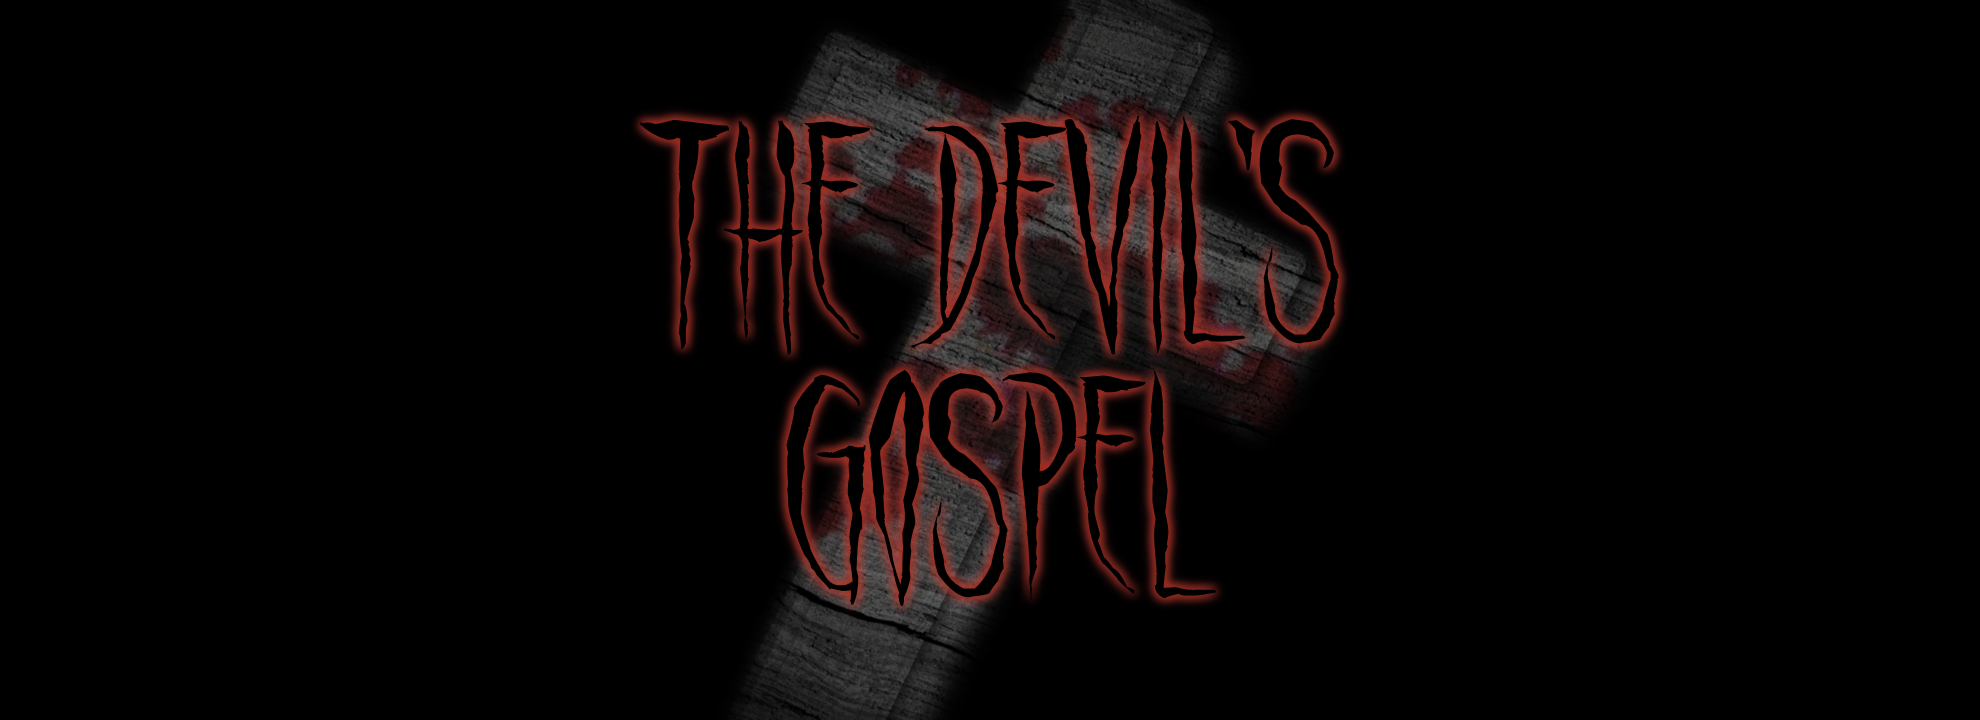 The Devil's Gospel